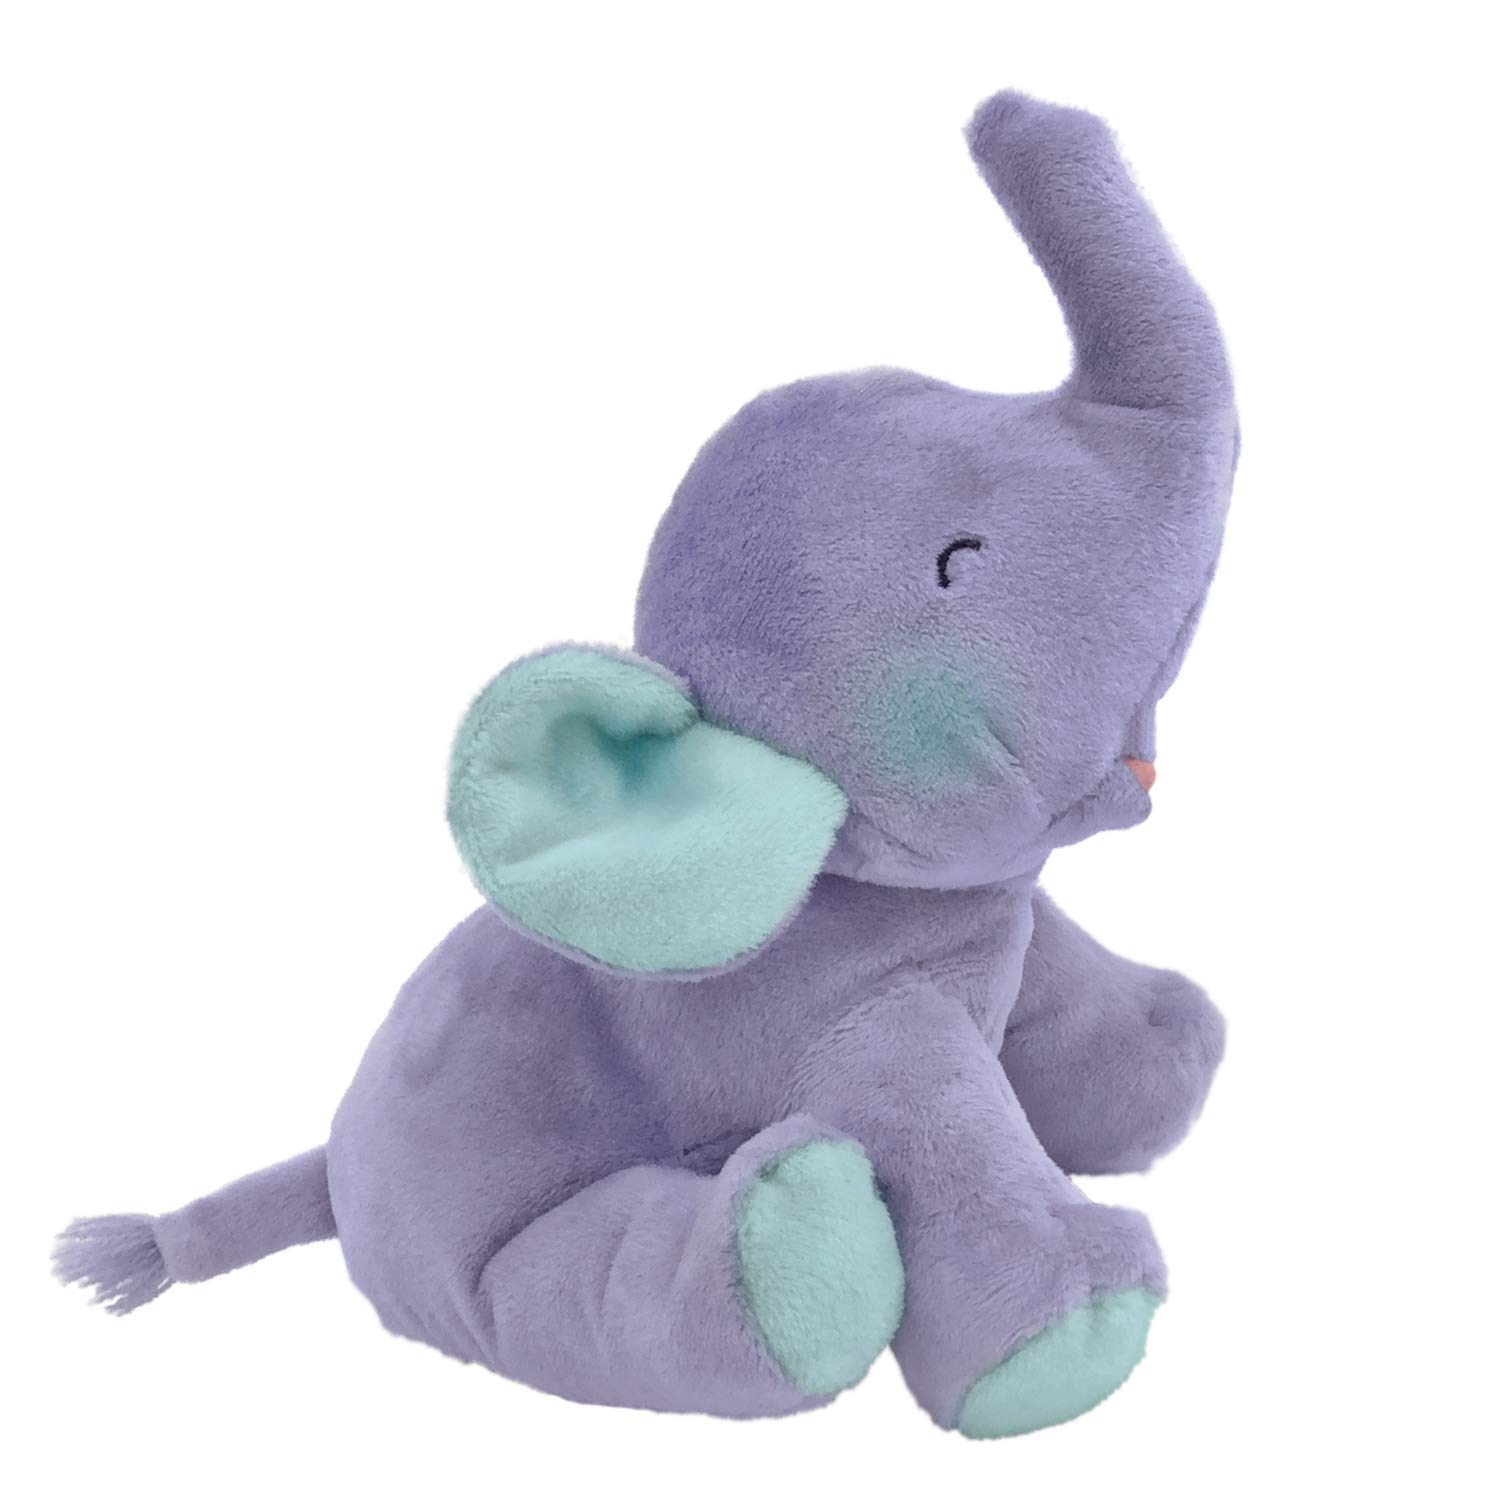 MerryMakers If Animals Kissed Good Night Soft Plush Baby Elephant Stuffed Animal Toy, 8-Inch, from Ann Whitford Paul's If Animals Kissed Good Night Book Series